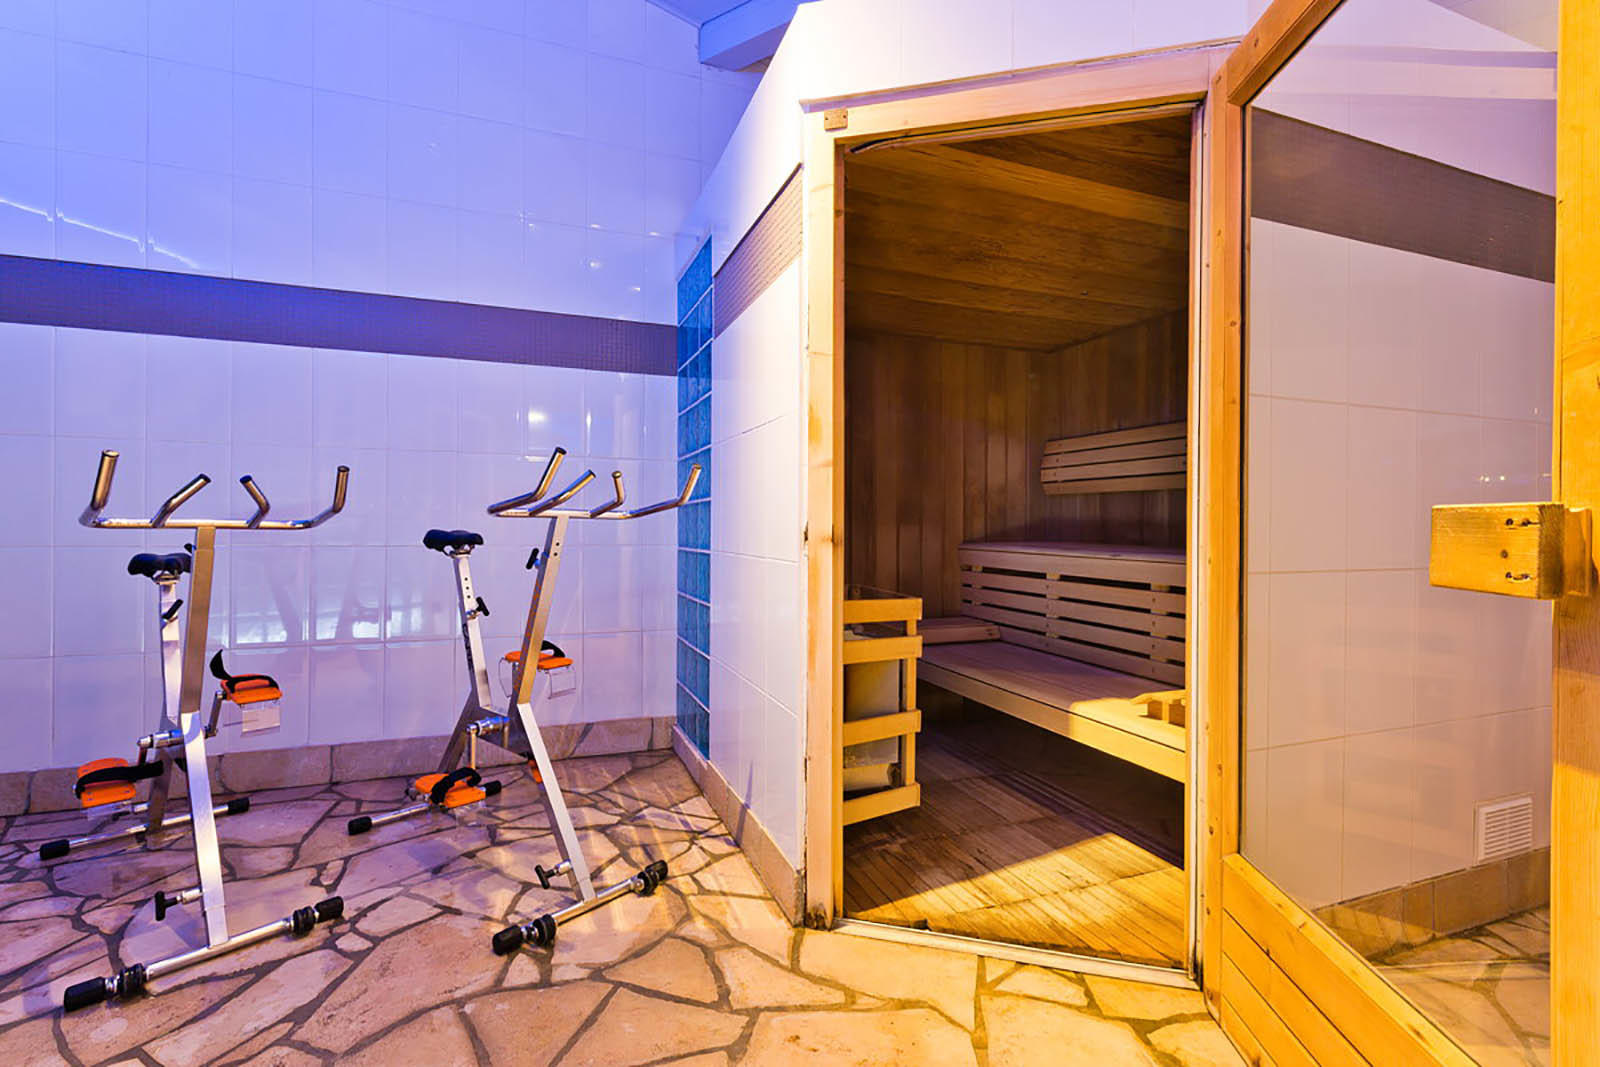 Bikes and Sauna at Hotel Les Gentianettes, The Originals Relais